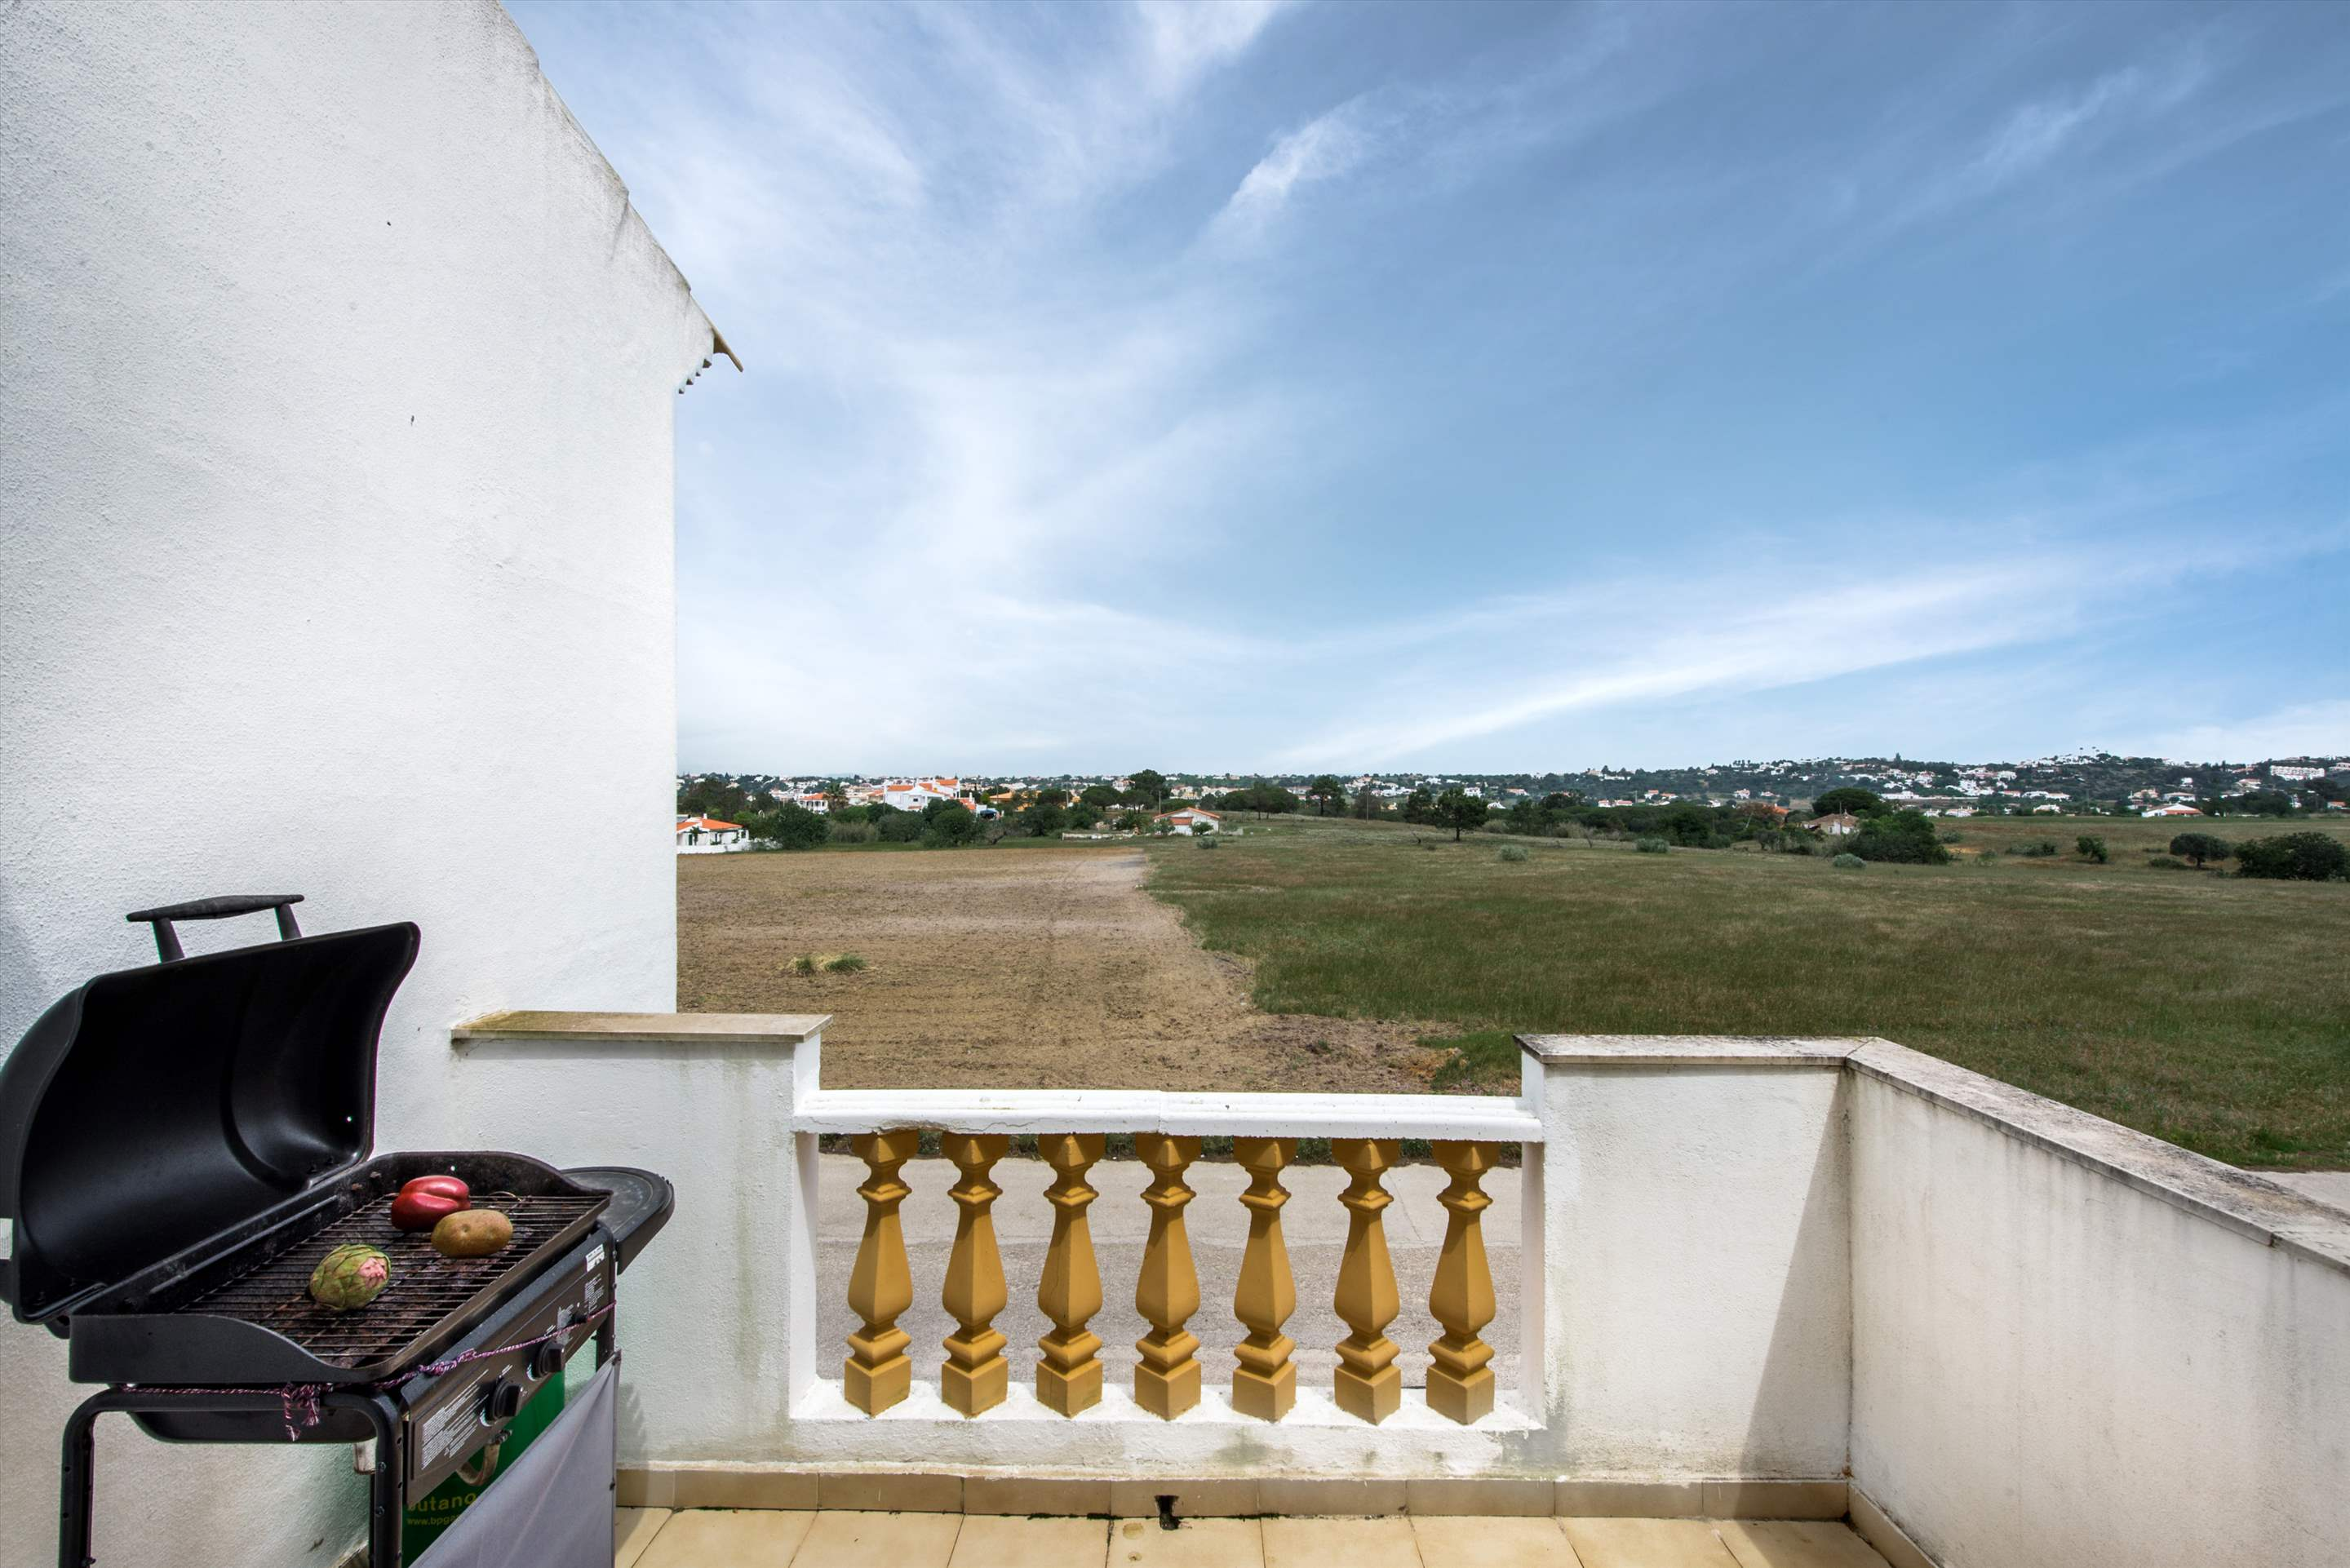 Apt O Monte, For Up to 4 Persons, 2 bedroom apartment in Gale, Vale da Parra and Guia, Algarve Photo #14